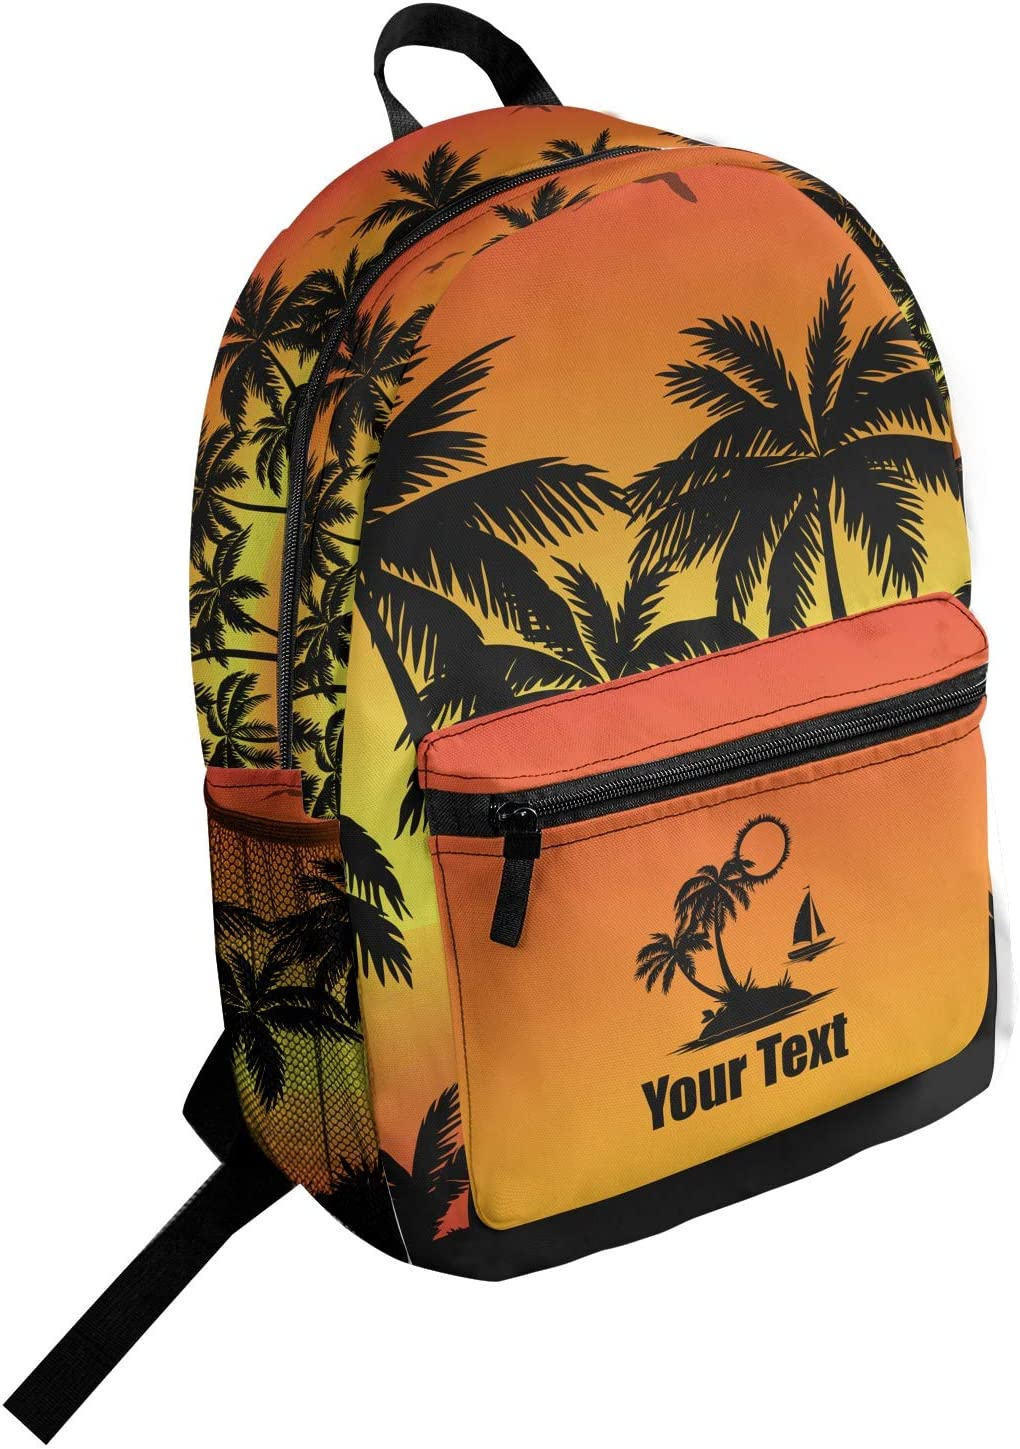 Tropical Sunset Student Backpack Personalized